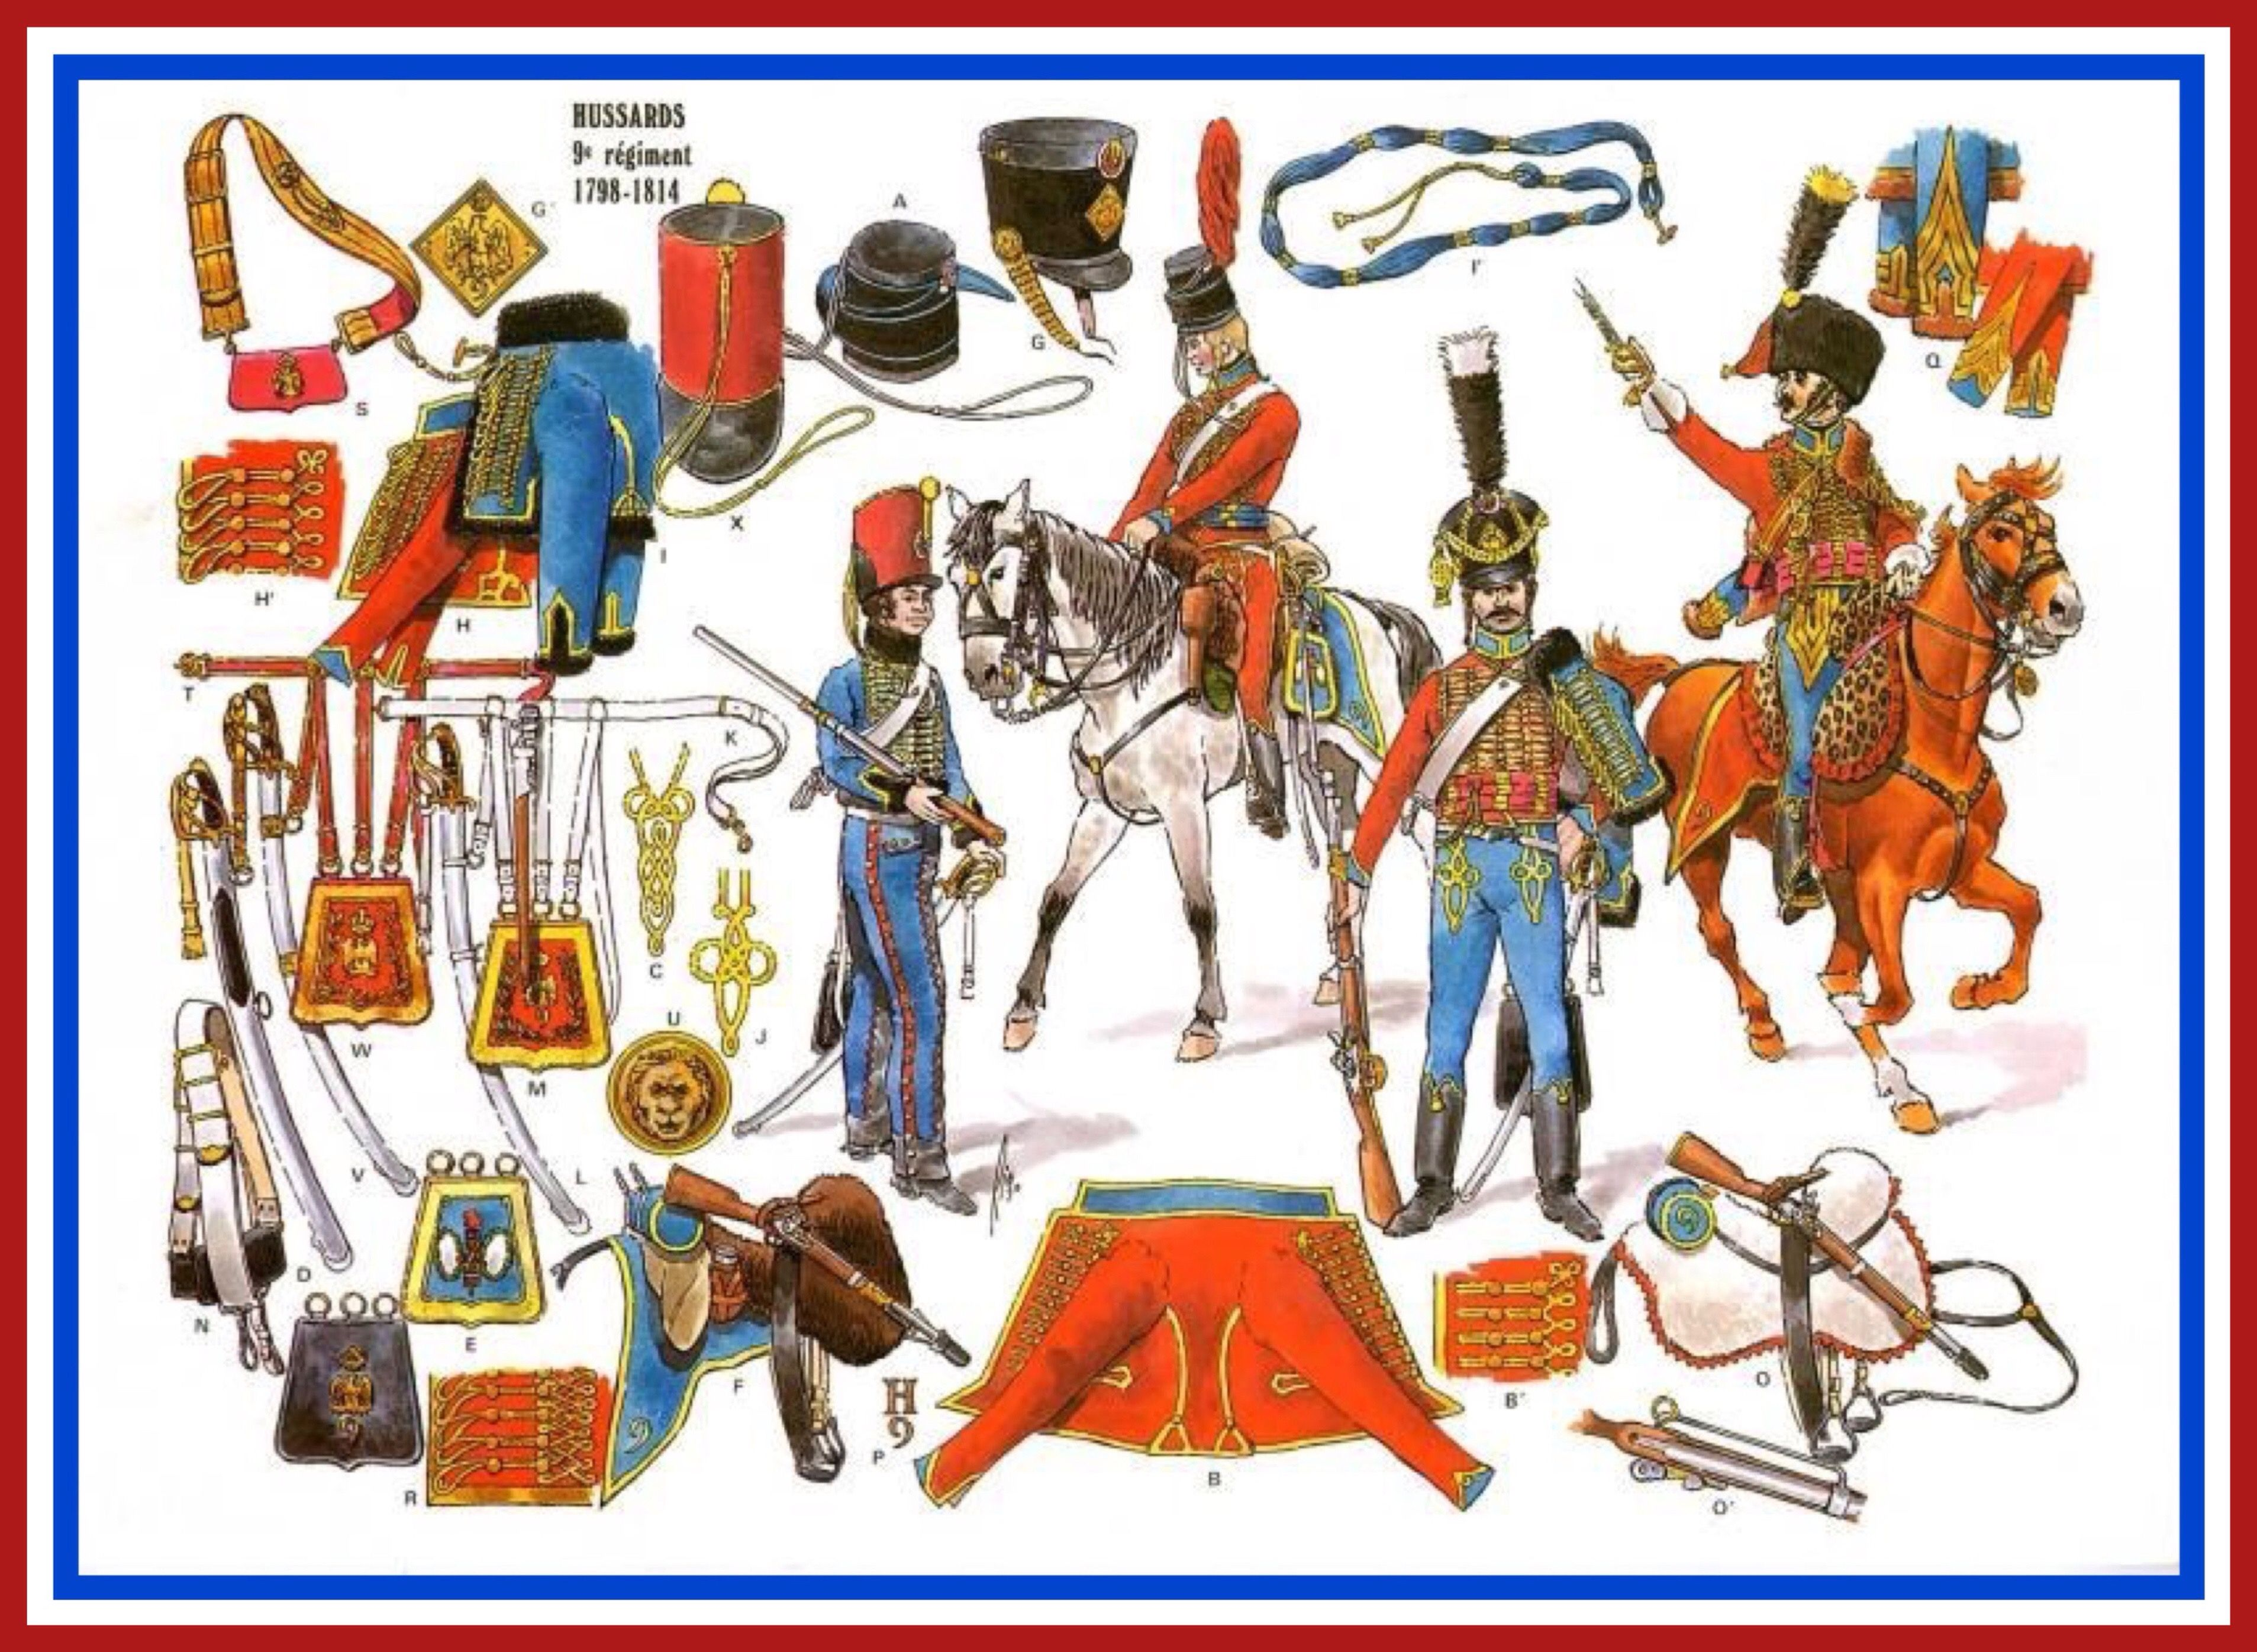 French Hussars of the 9th regiment 1798 to 1814